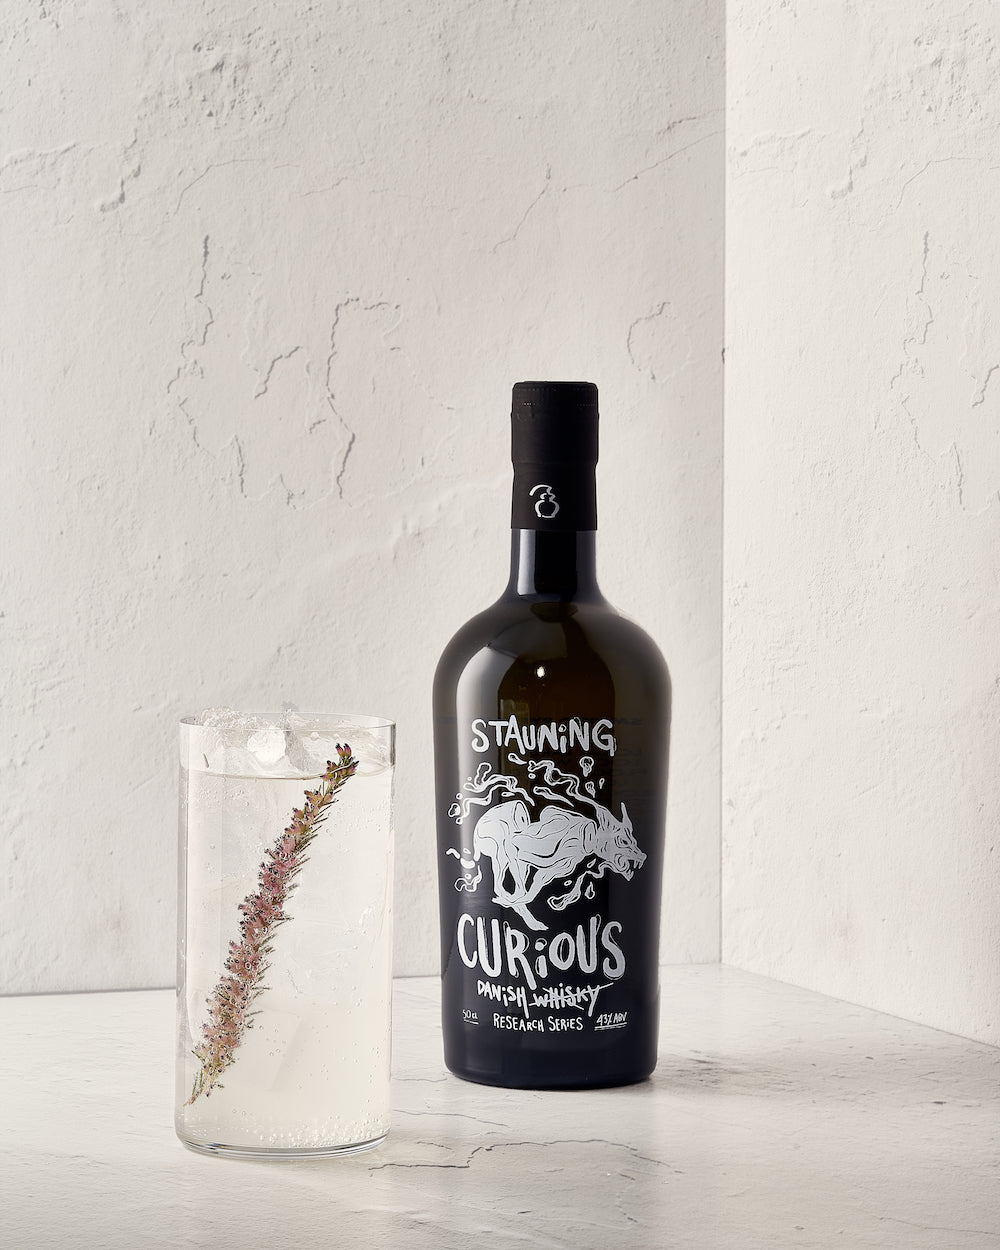 Curious ginger beer